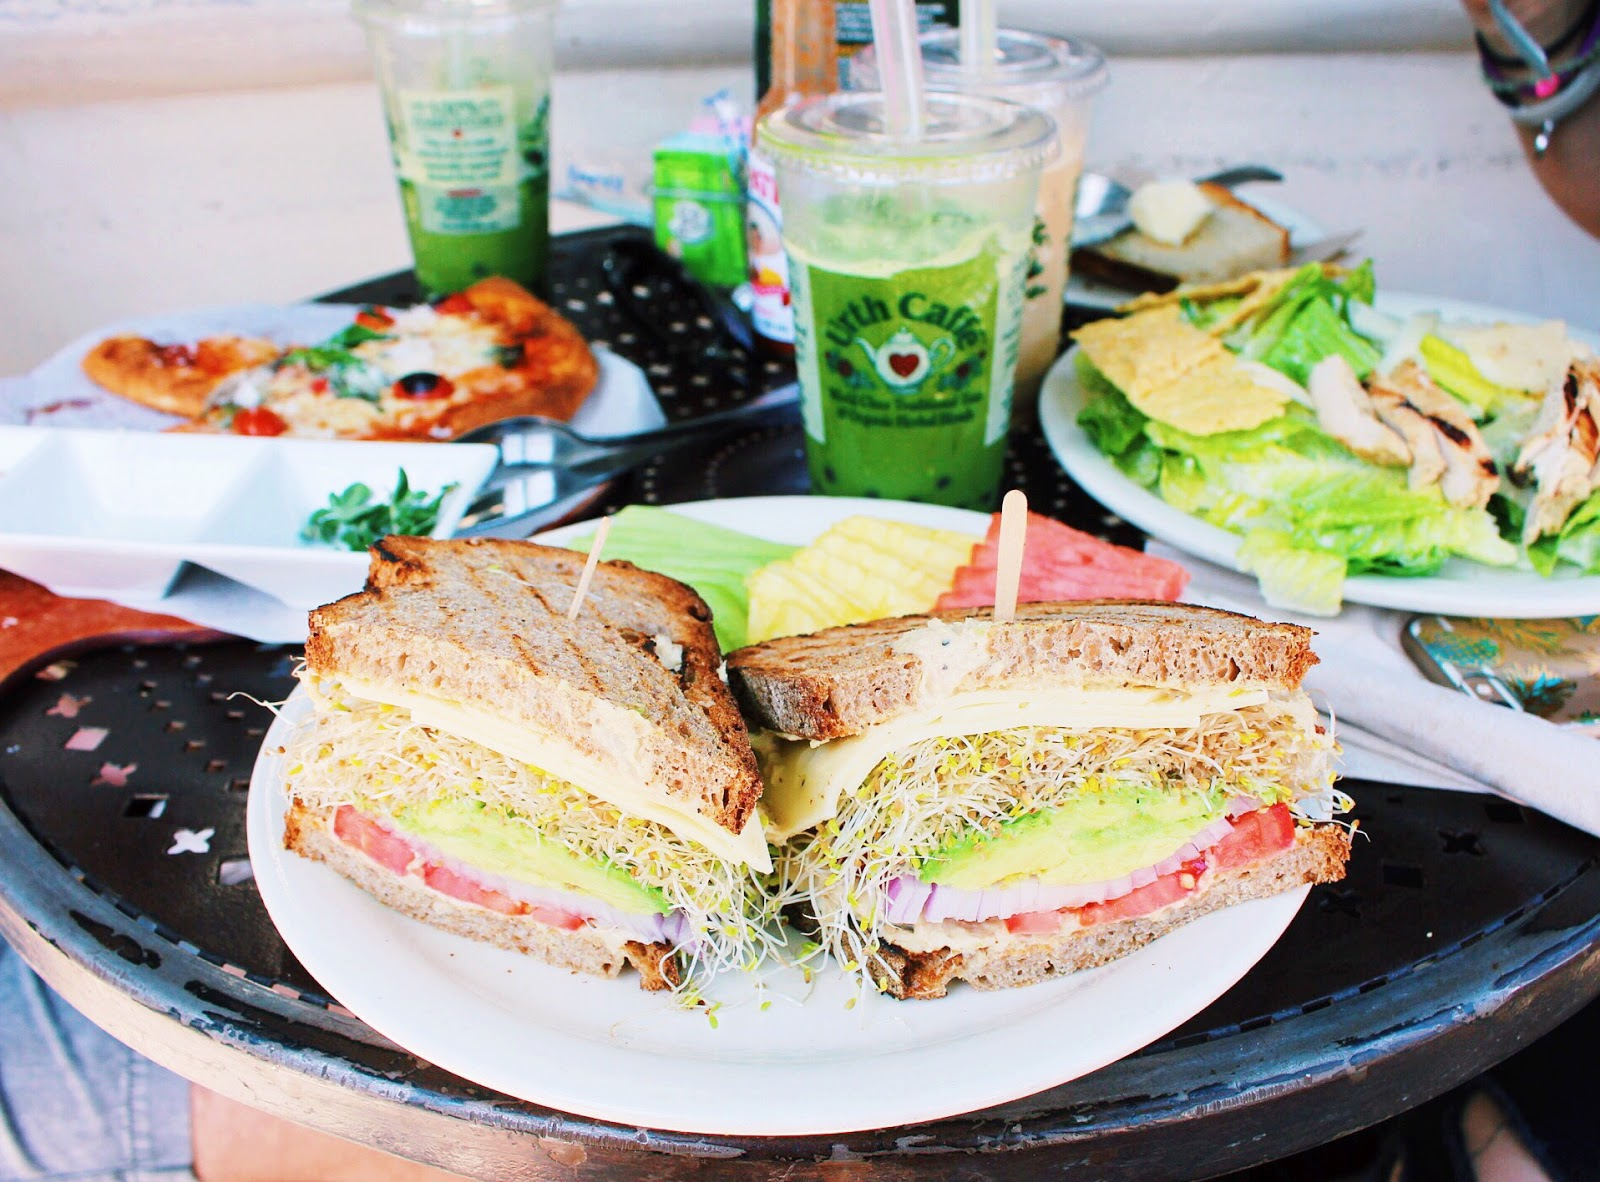 urth caffe on melrose in los angeles, green tea boba and sprout sandwich